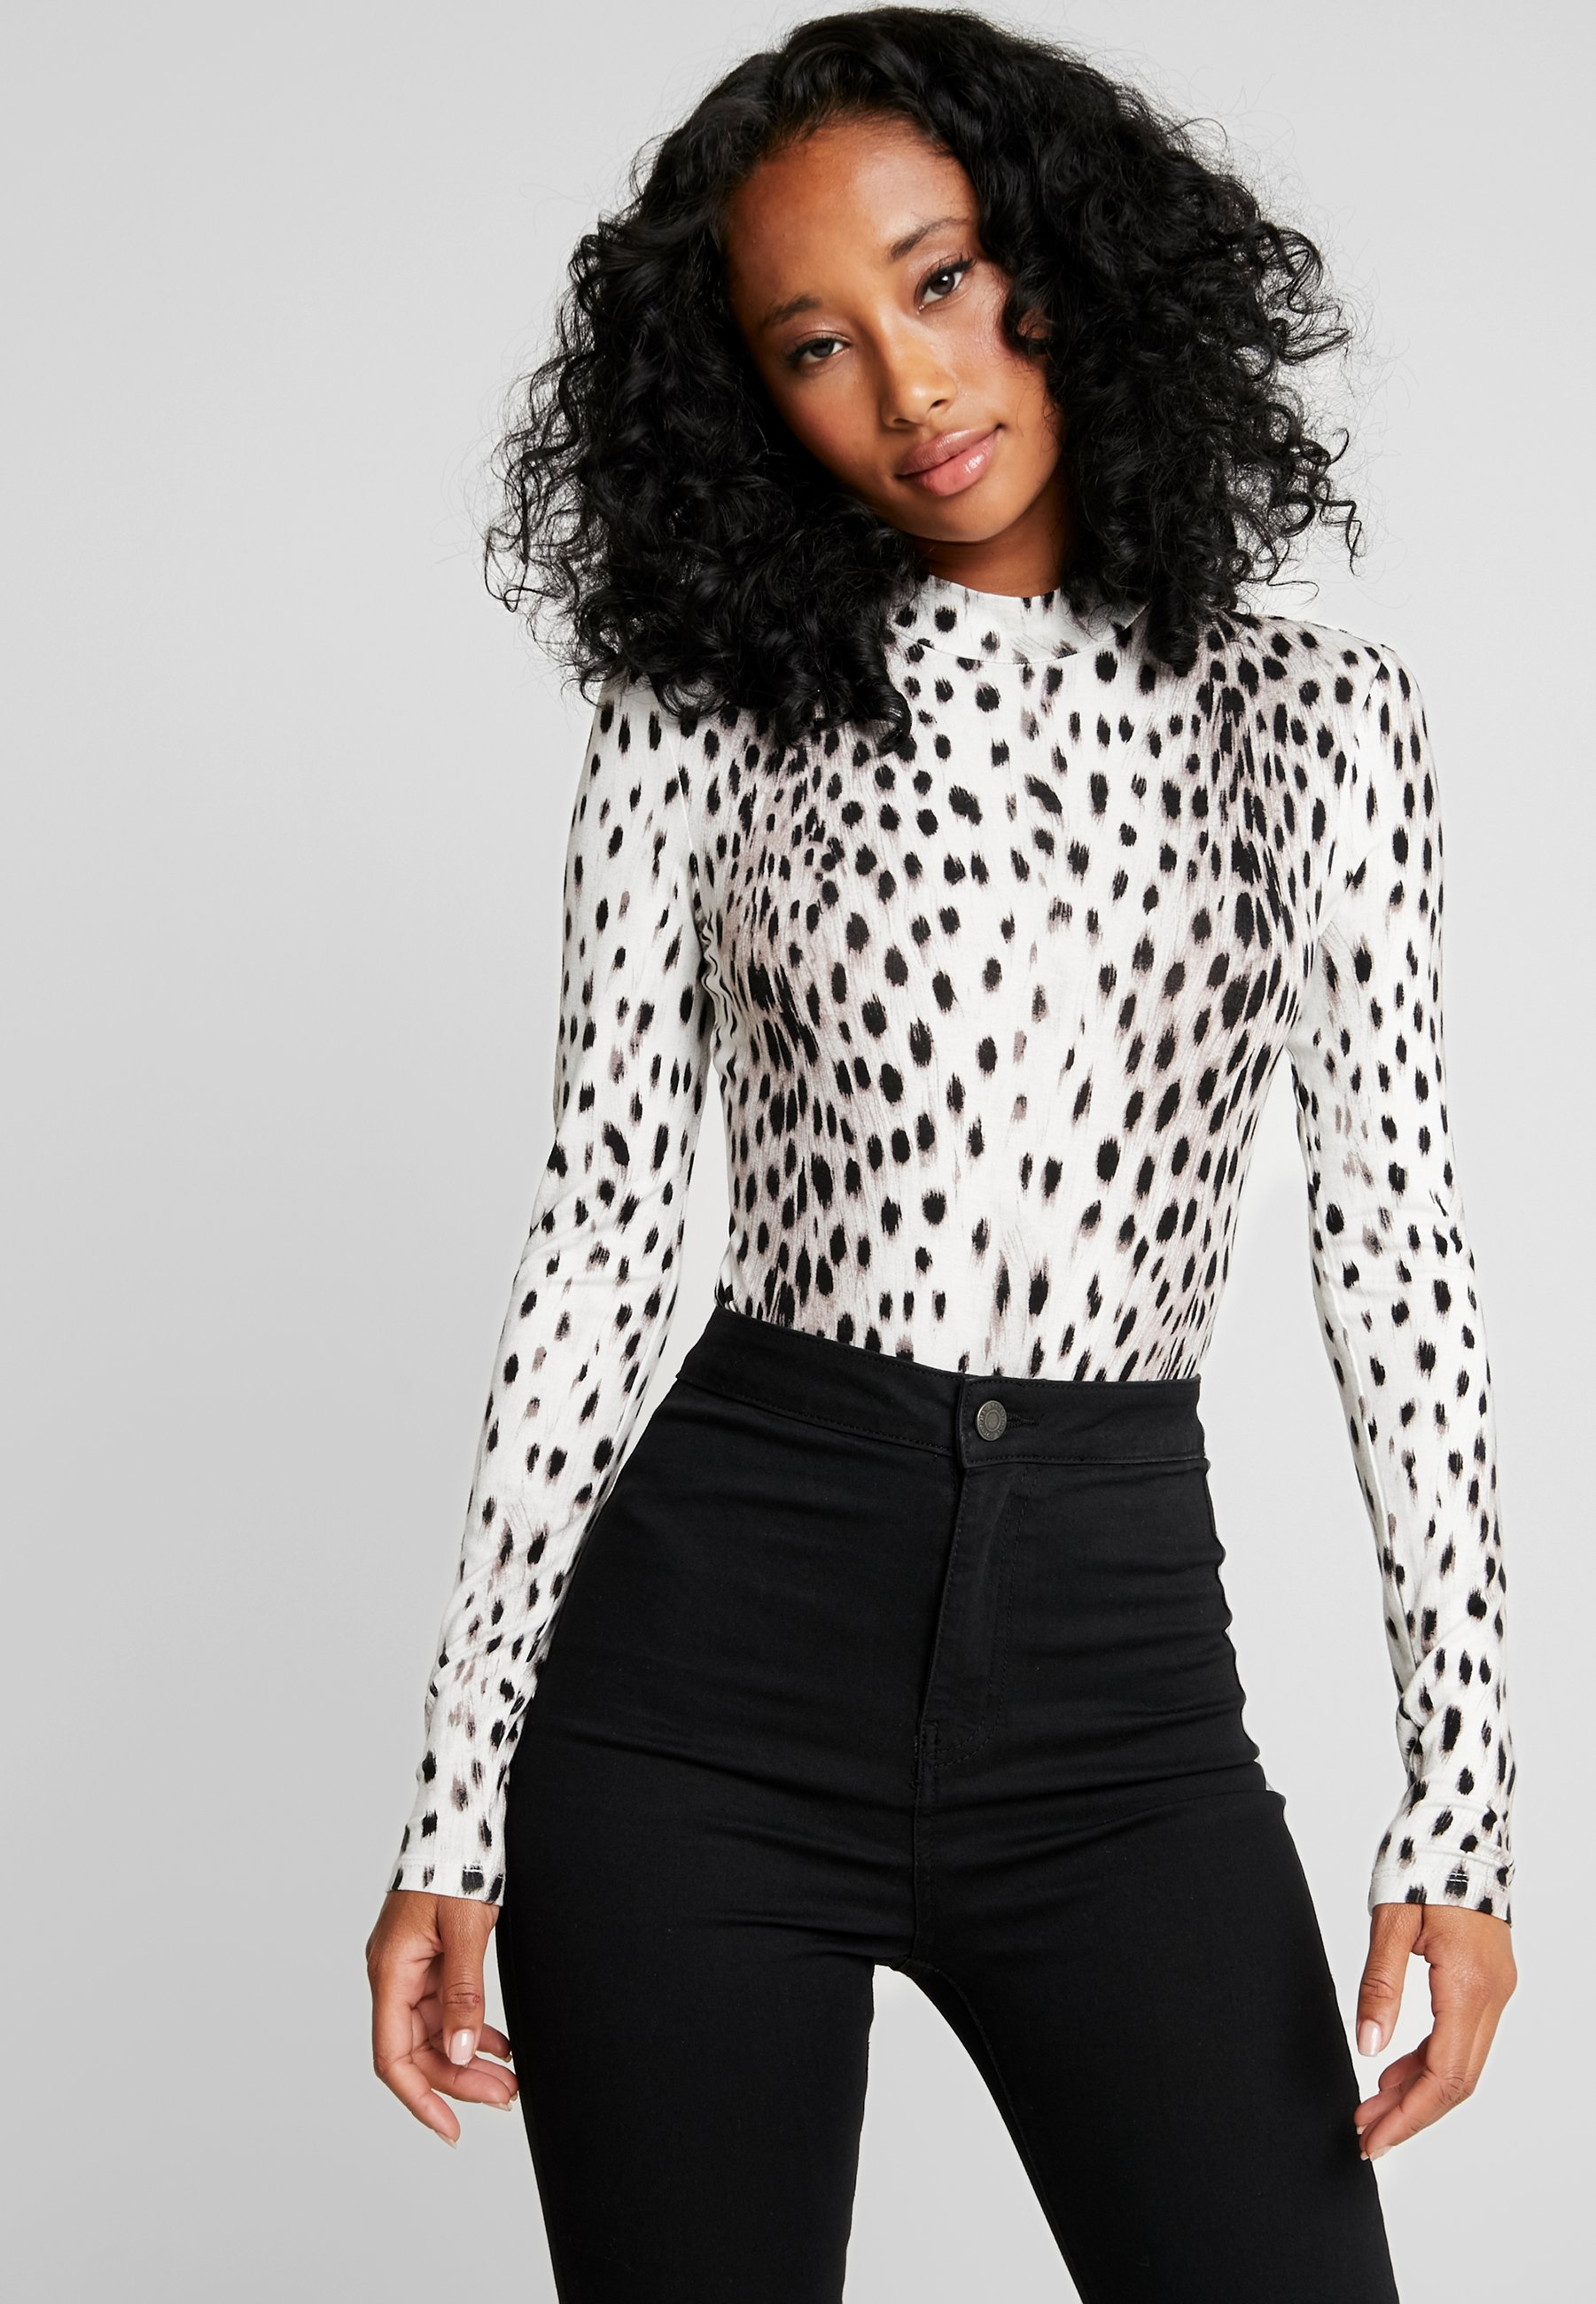 À Forever Longues Leopard Neck New Long Bronte Manches Roll shirt SleeveT 8nO0XwkP